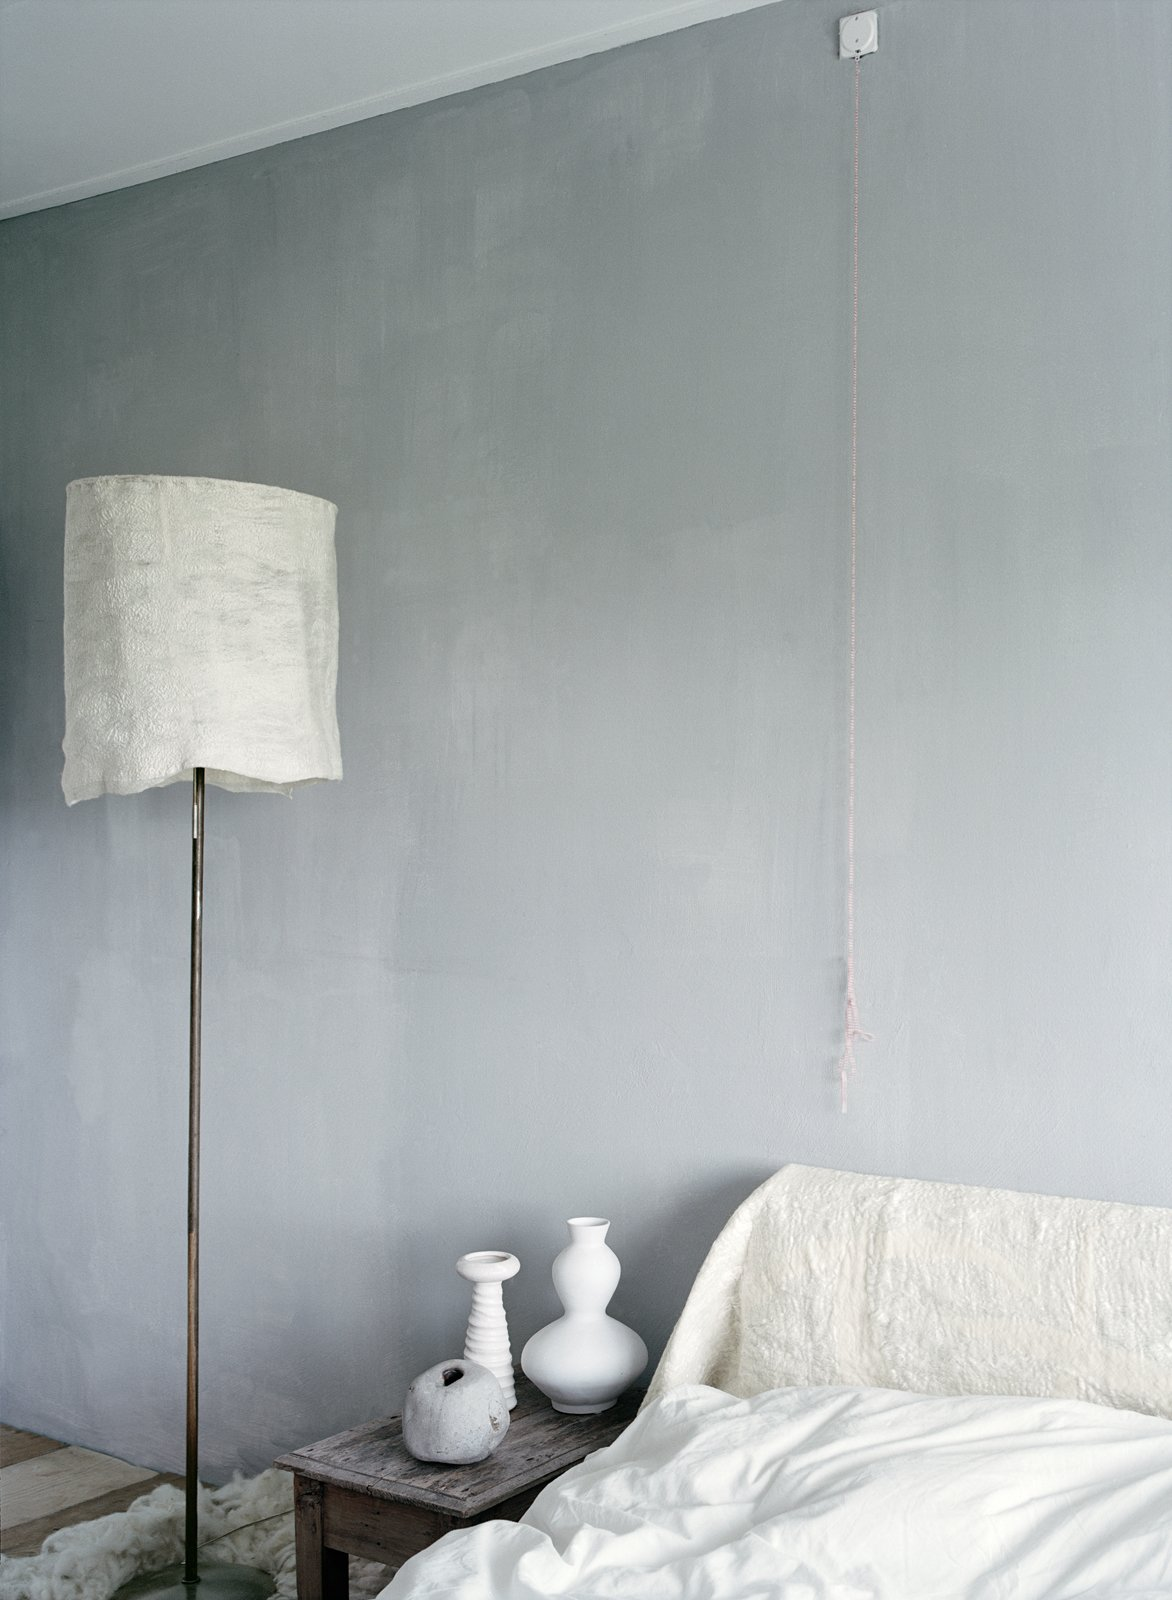 The couple's bedroom is a serene space with tinted plaster walls and a white felt headboard and lampshade by Leen.